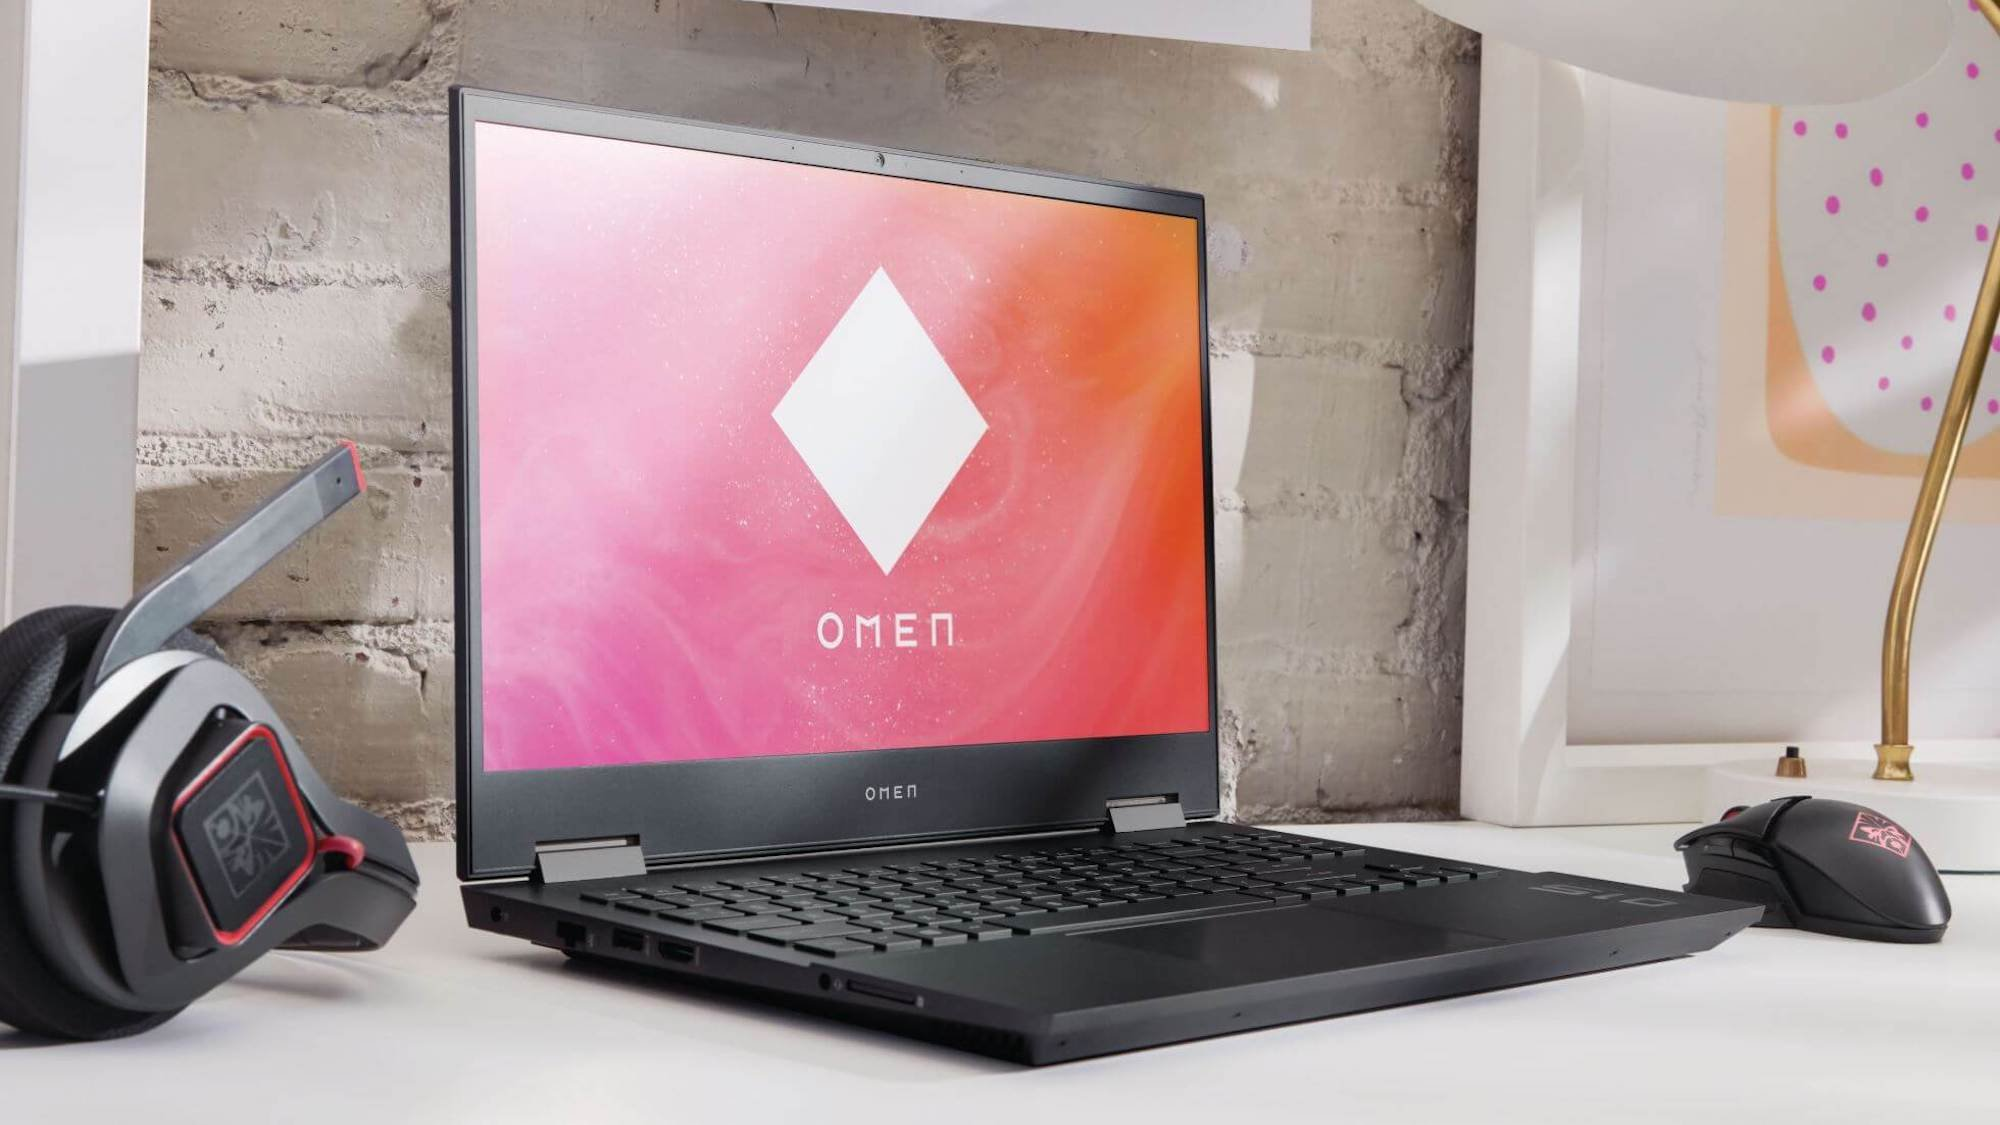 HP OMEN 15 2020 version gaming laptop comes in models with AMD and Intel processors